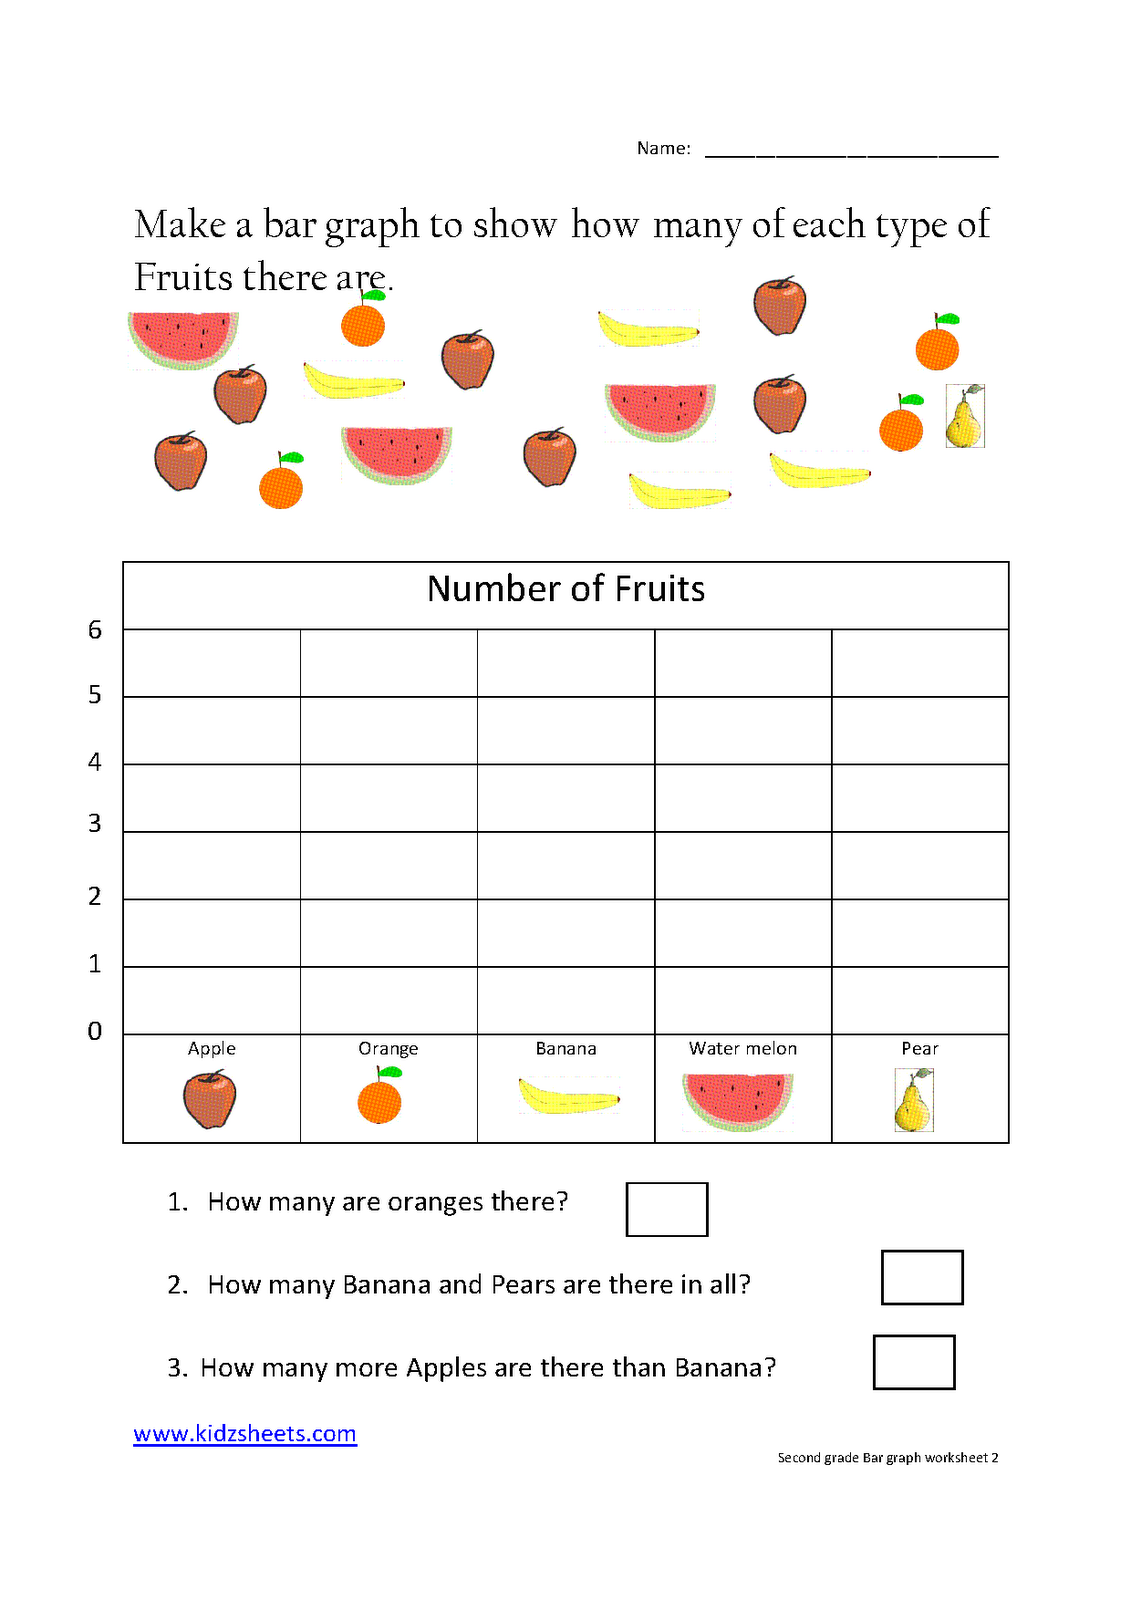 Kidz Worksheets Second Grade Bar Graph Worksheet2